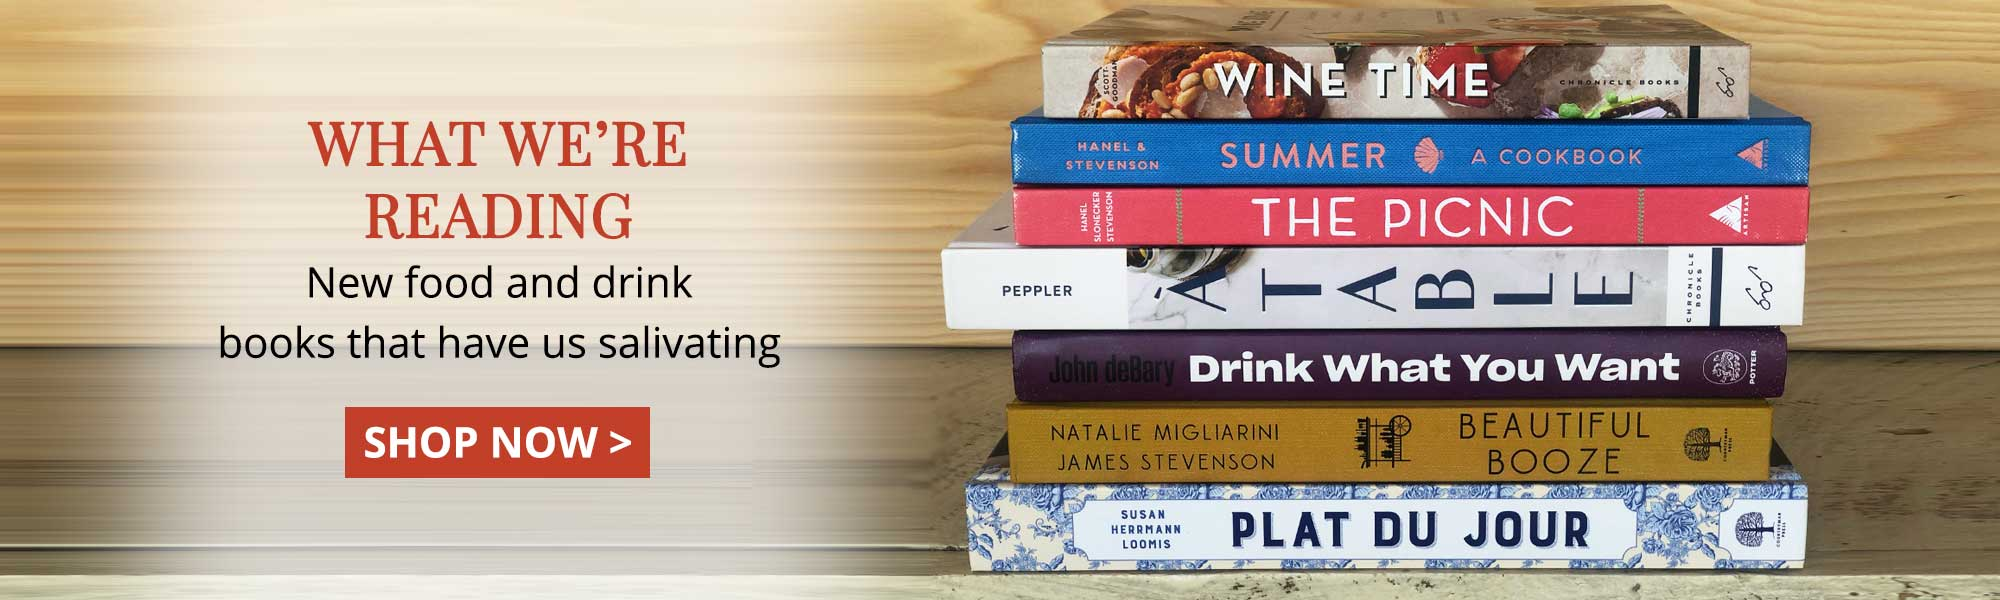 What We're Reading: New food and drinks books that have us salivating